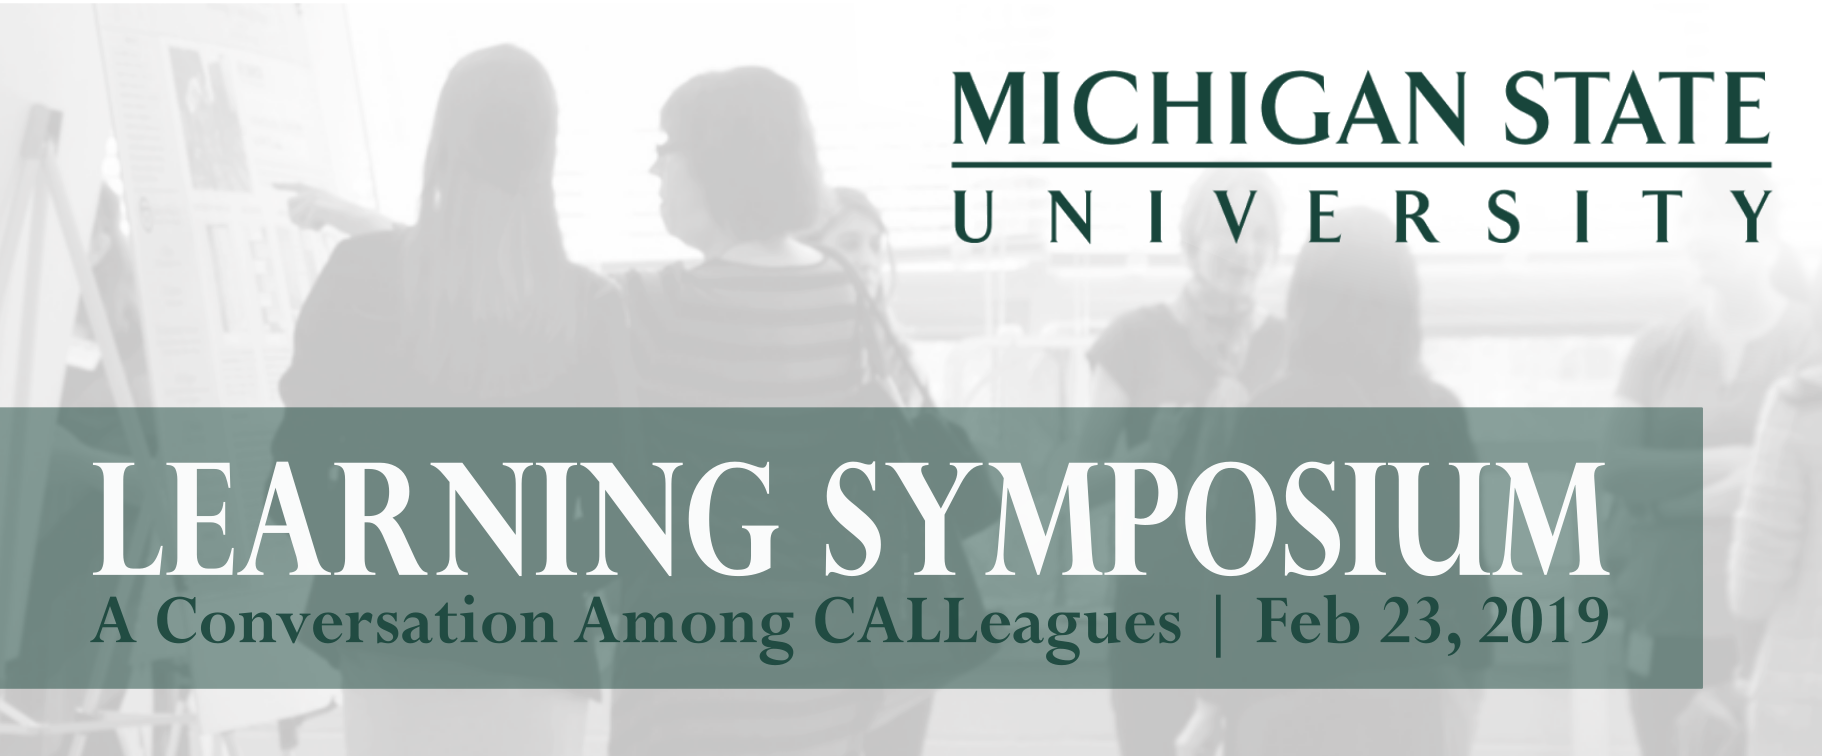 Learning Symposium: A Conversation Among CALLeagues @ Wells Hall (B-Wing Classrooms) | East Lansing | Michigan | United States